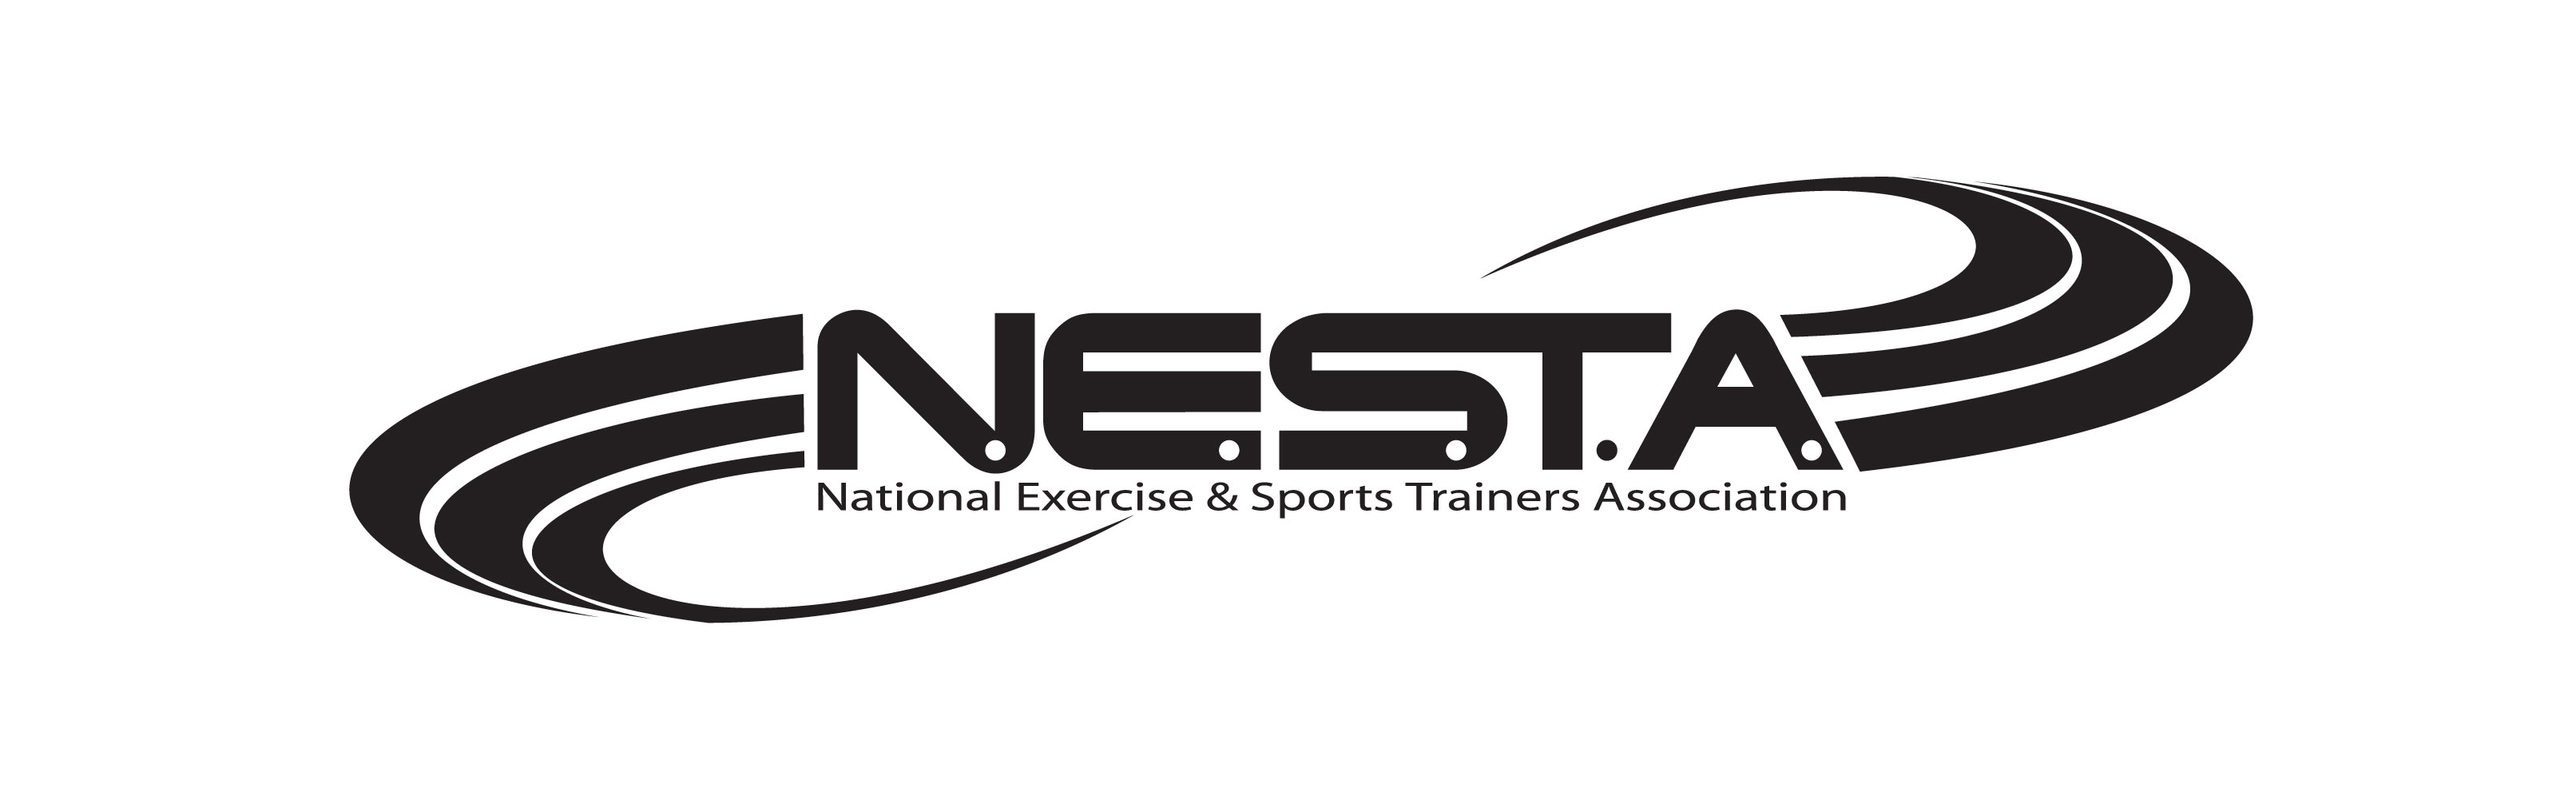 Nesta Expands Local Personal Training Certification Workshops To